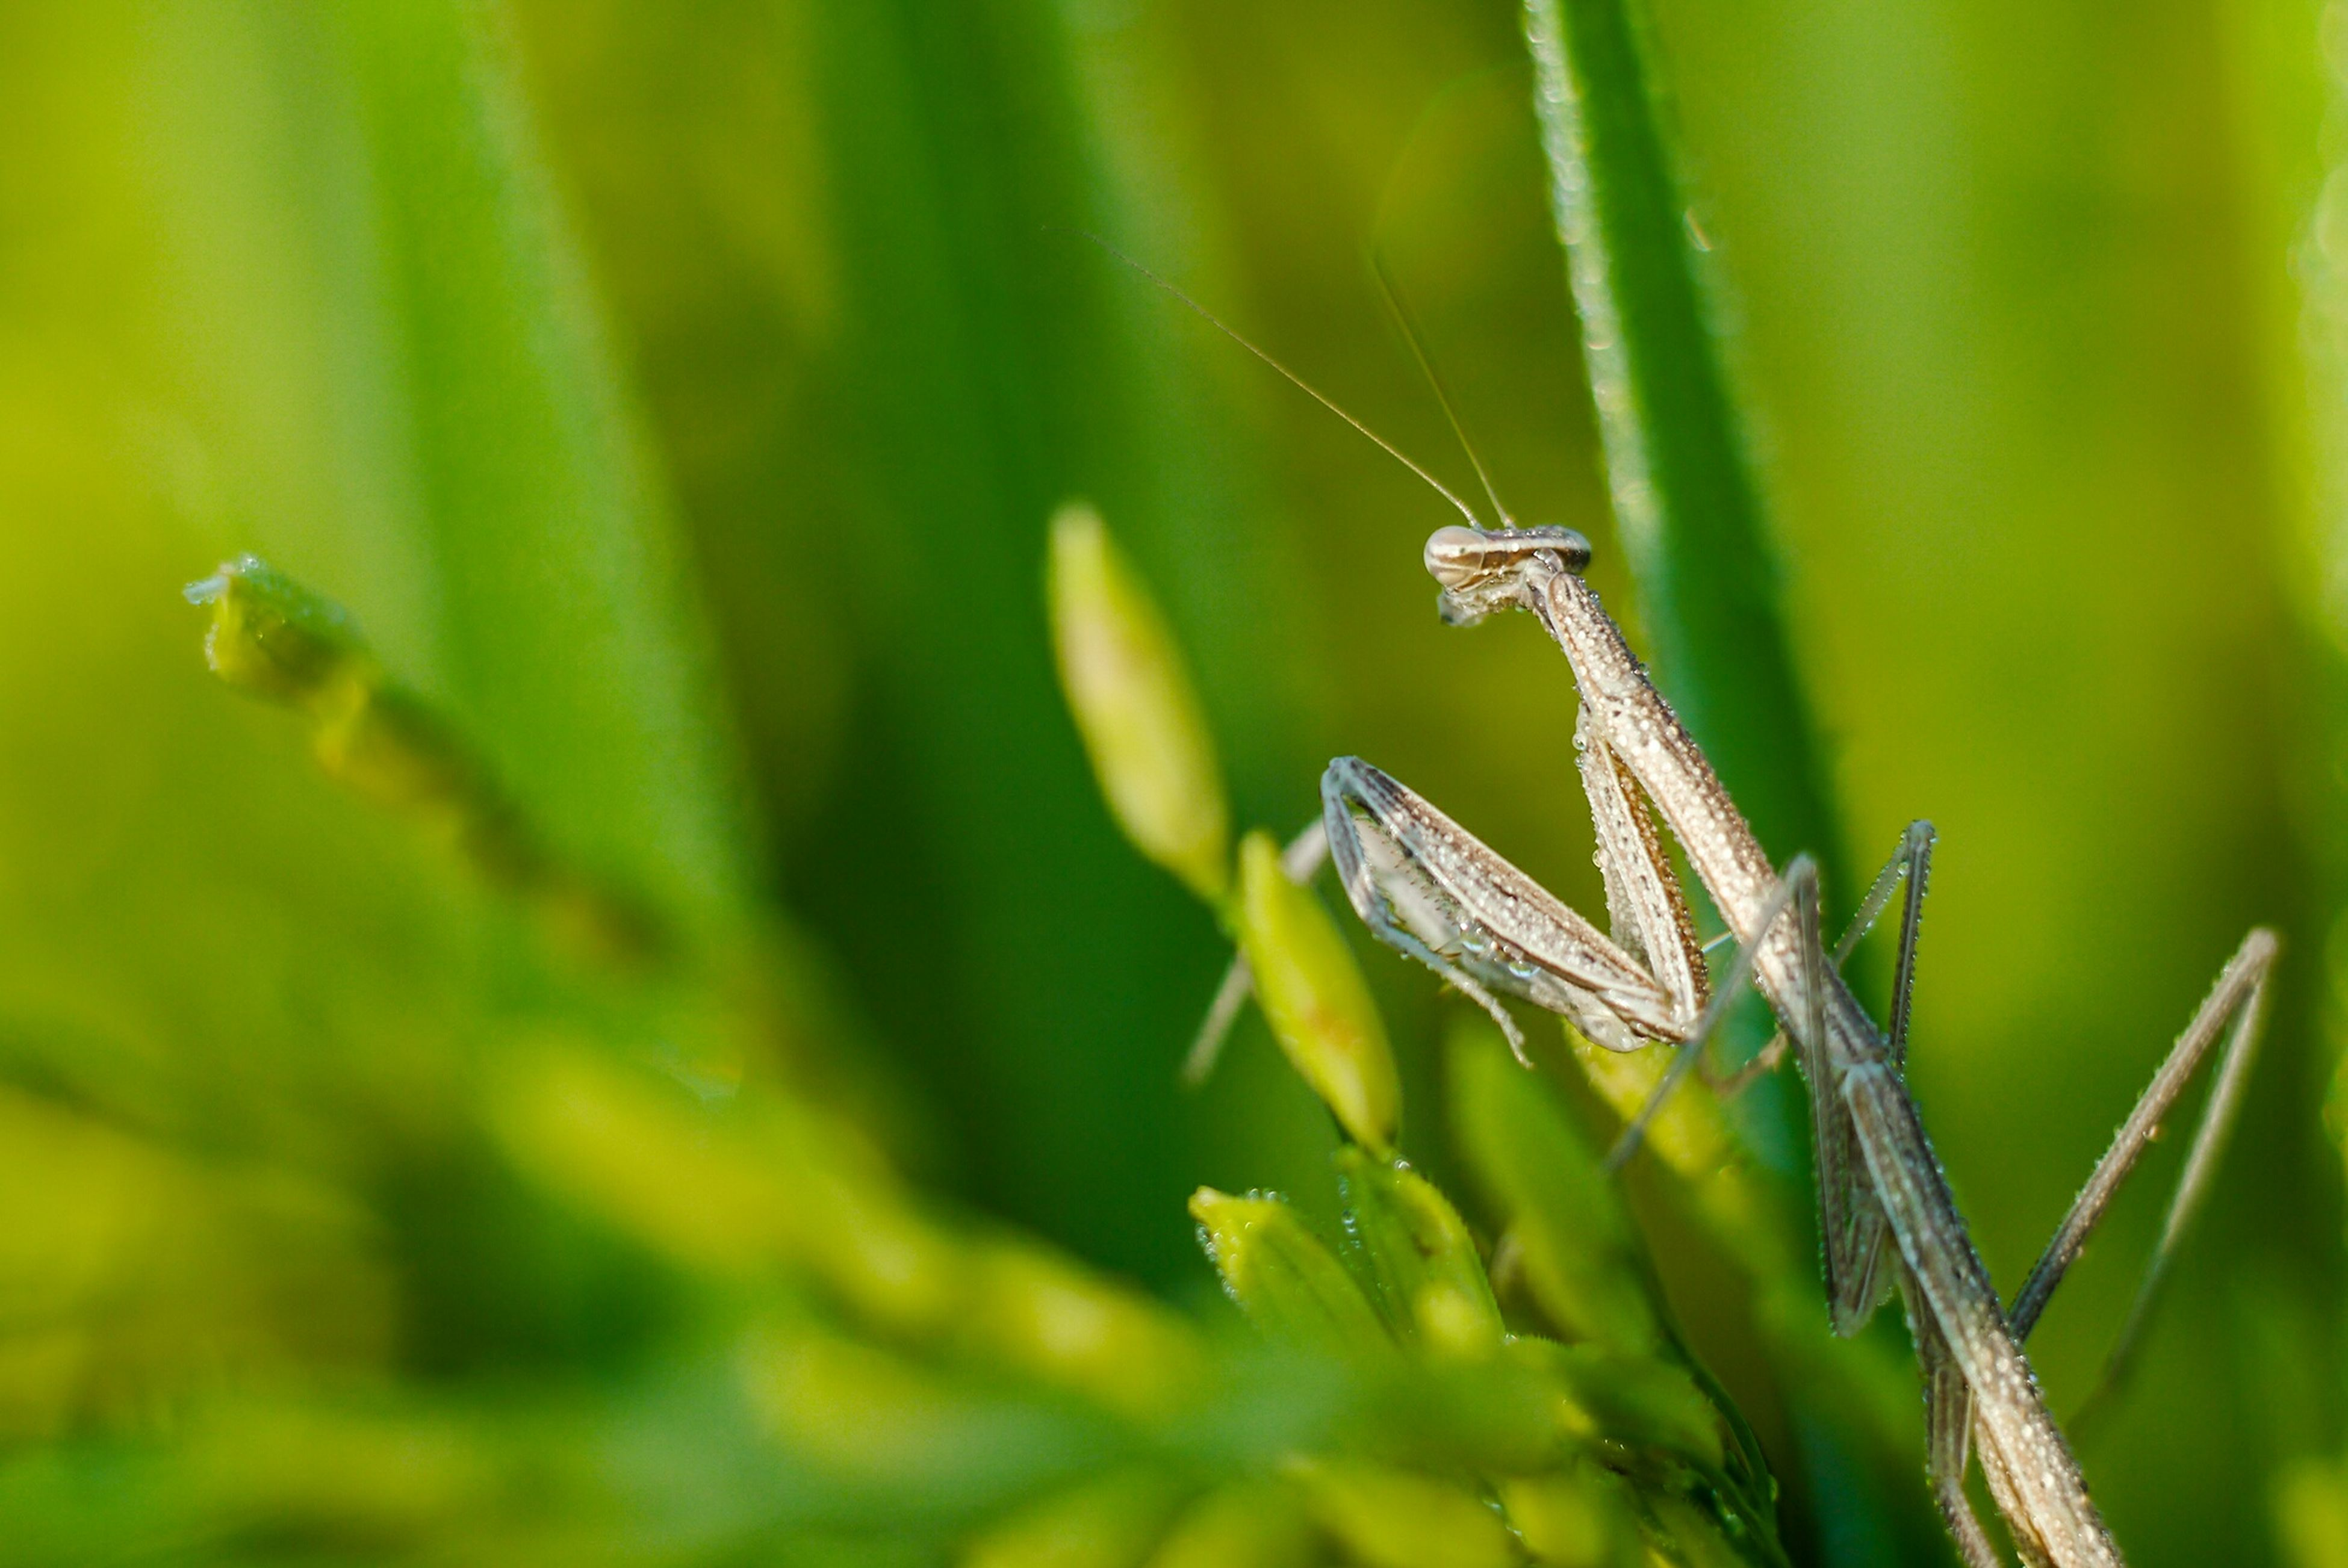 animals in the wild, one animal, animal themes, green color, insect, wildlife, focus on foreground, close-up, dragonfly, plant, nature, grass, blade of grass, selective focus, leaf, growth, day, outdoors, beauty in nature, no people